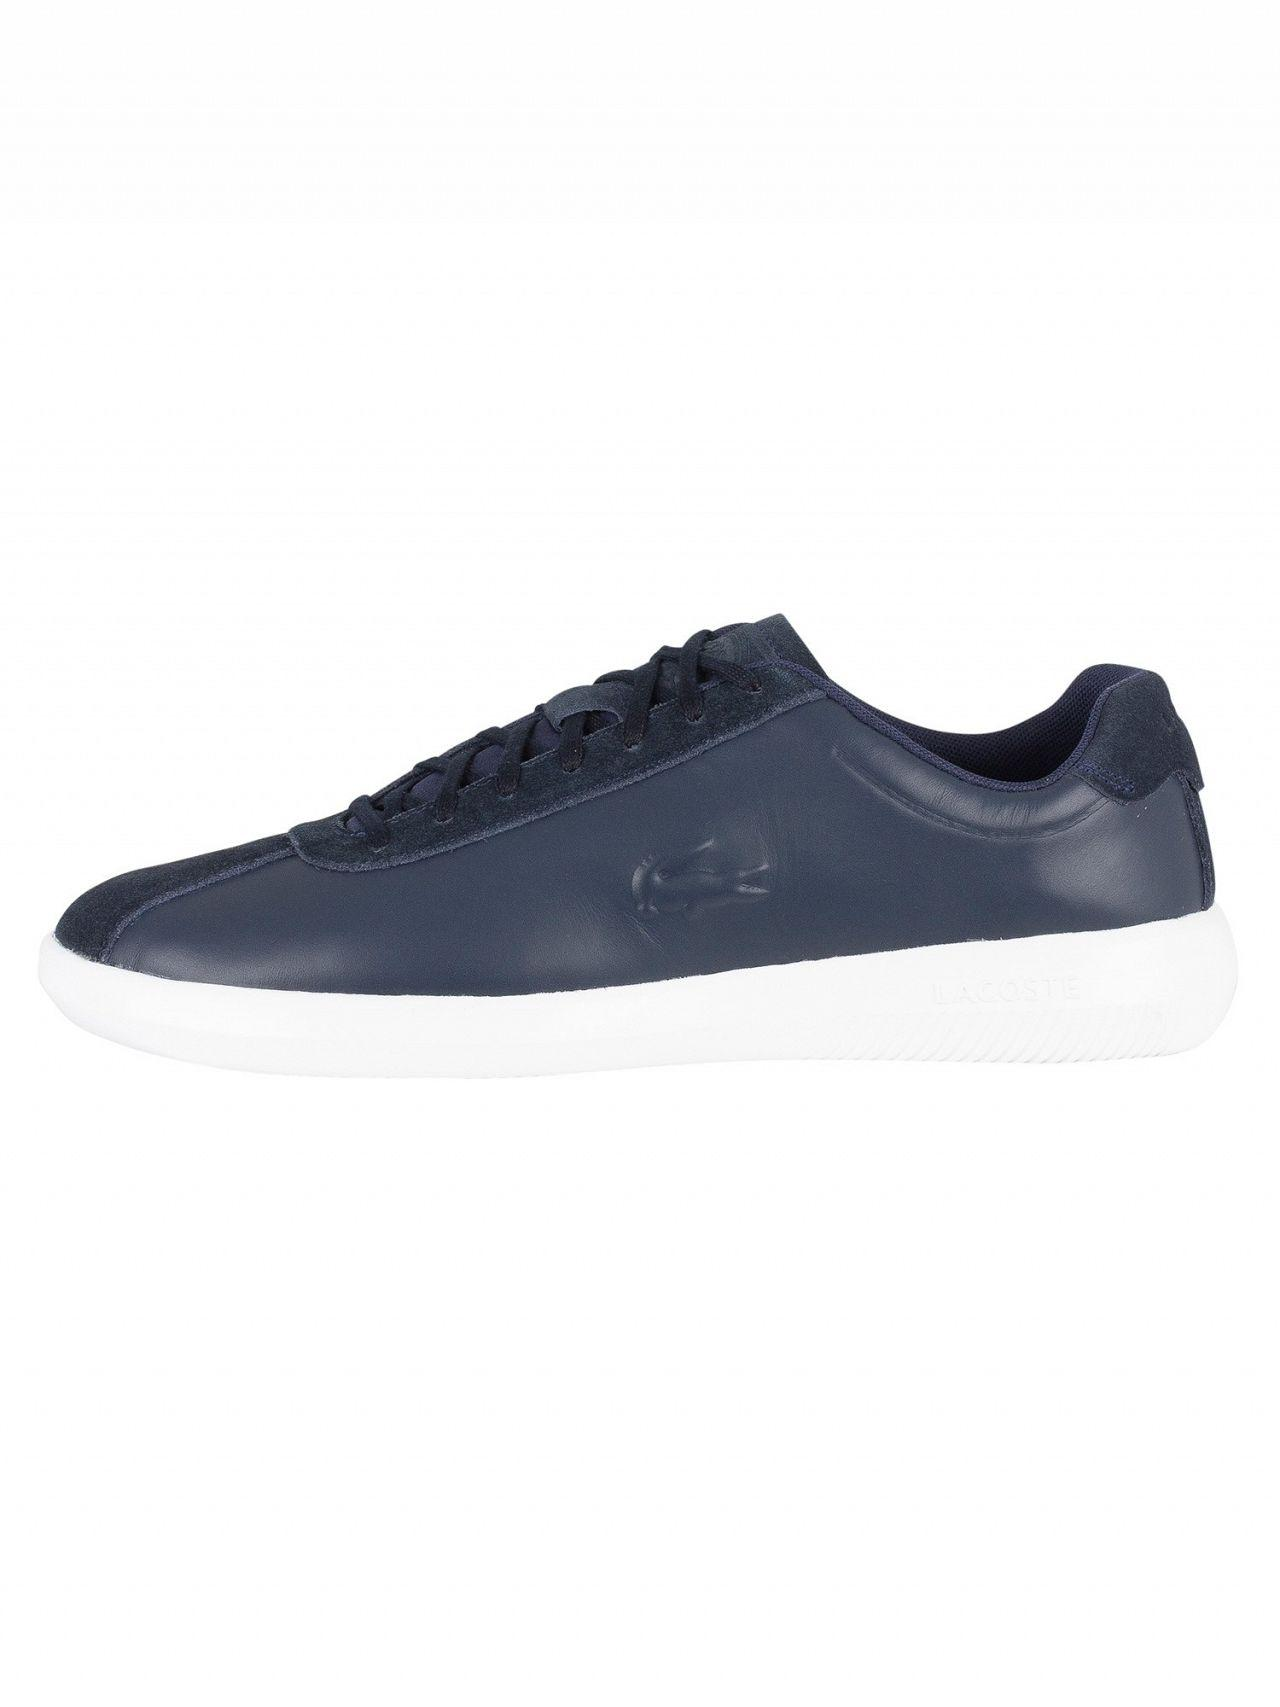 c0d04f8f4f3dd Lyst - Lacoste Navy white Avance 318 2 Spm Trainers in Blue for Men